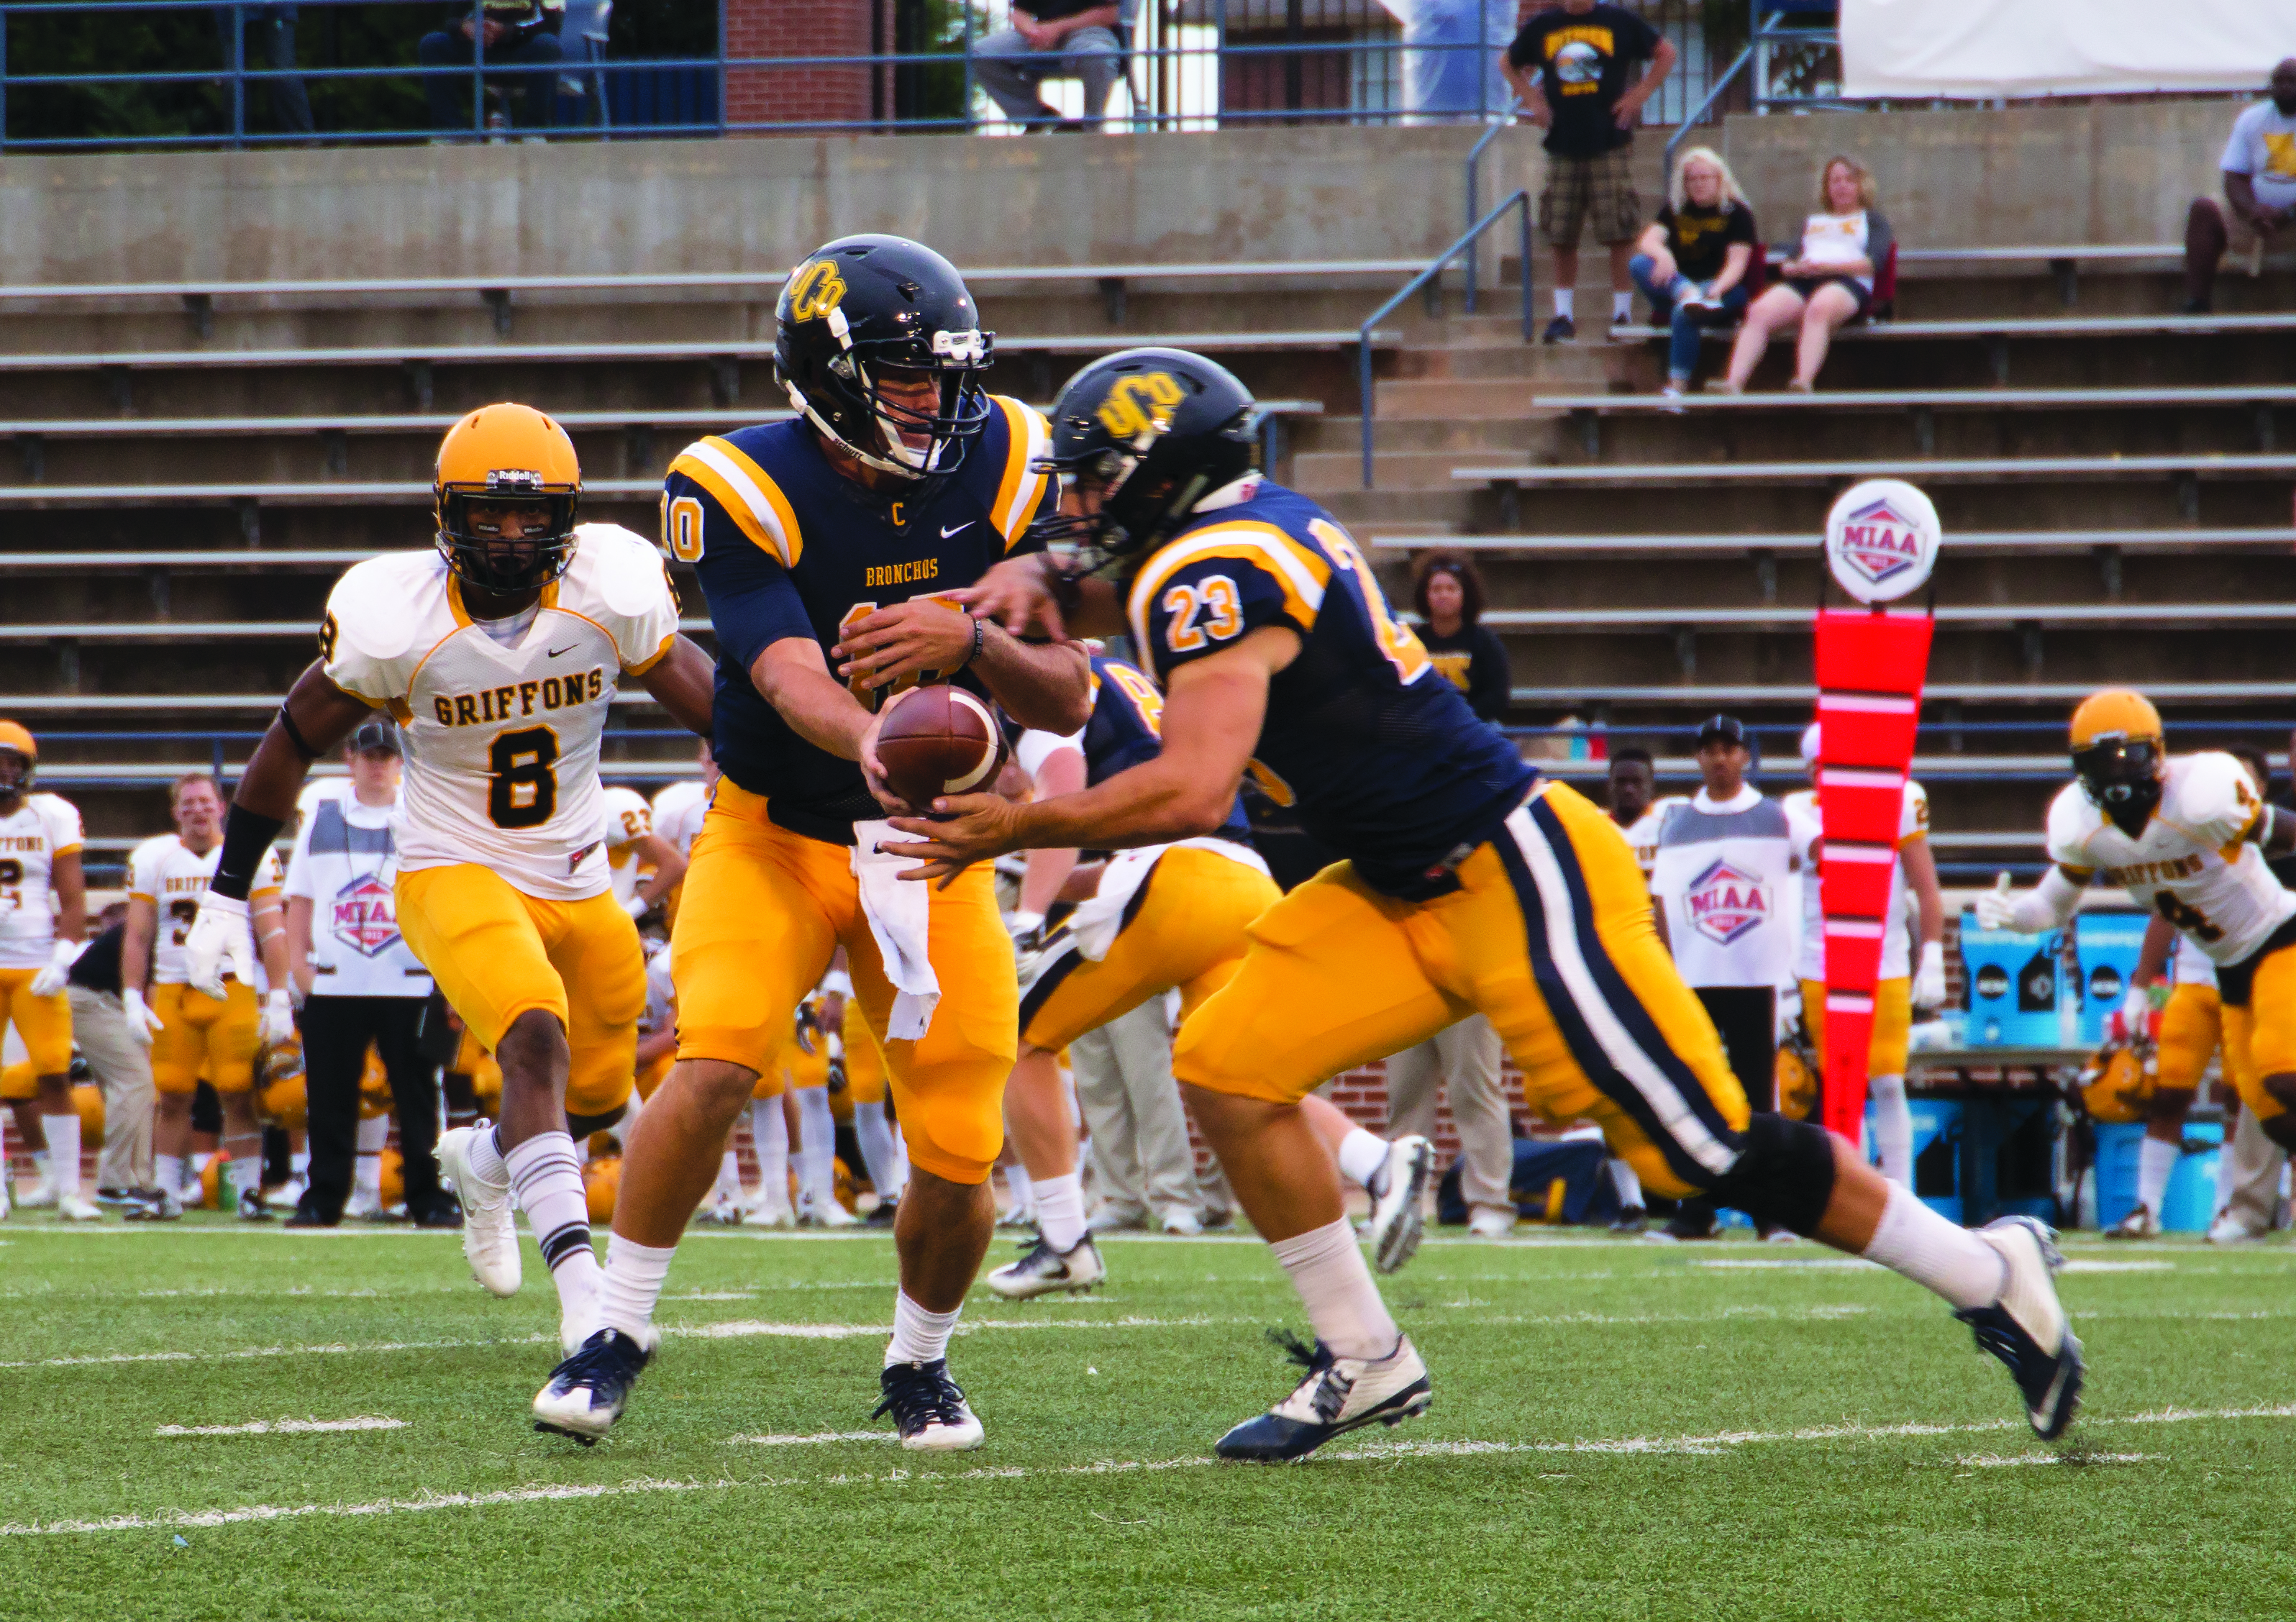 Bronchos' Backfield Ready To Run Wild